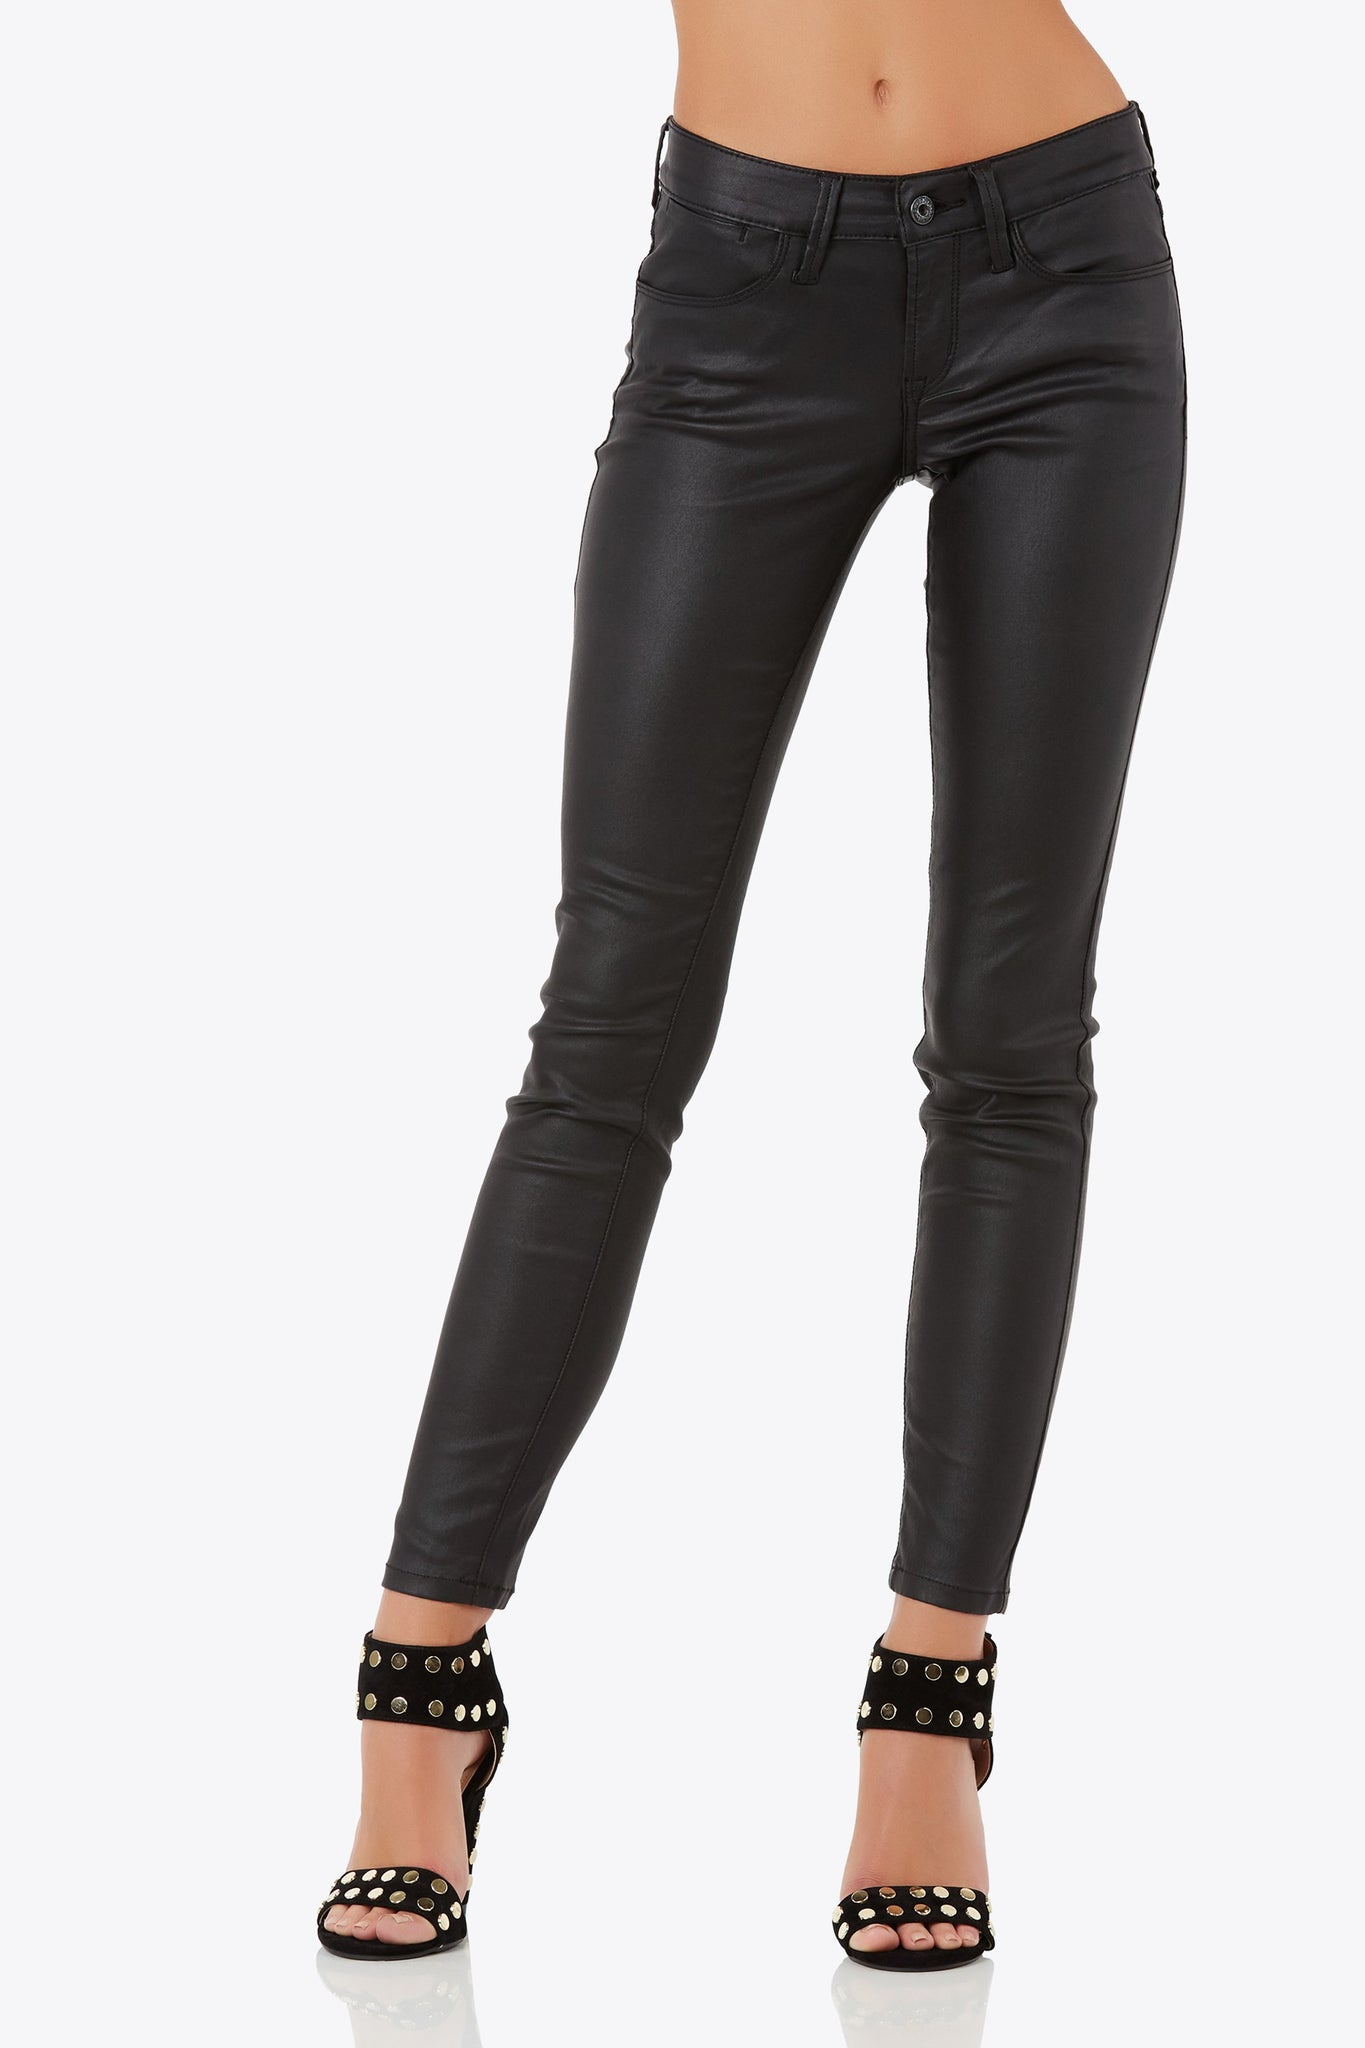 Alley Cat Coated Skinnies